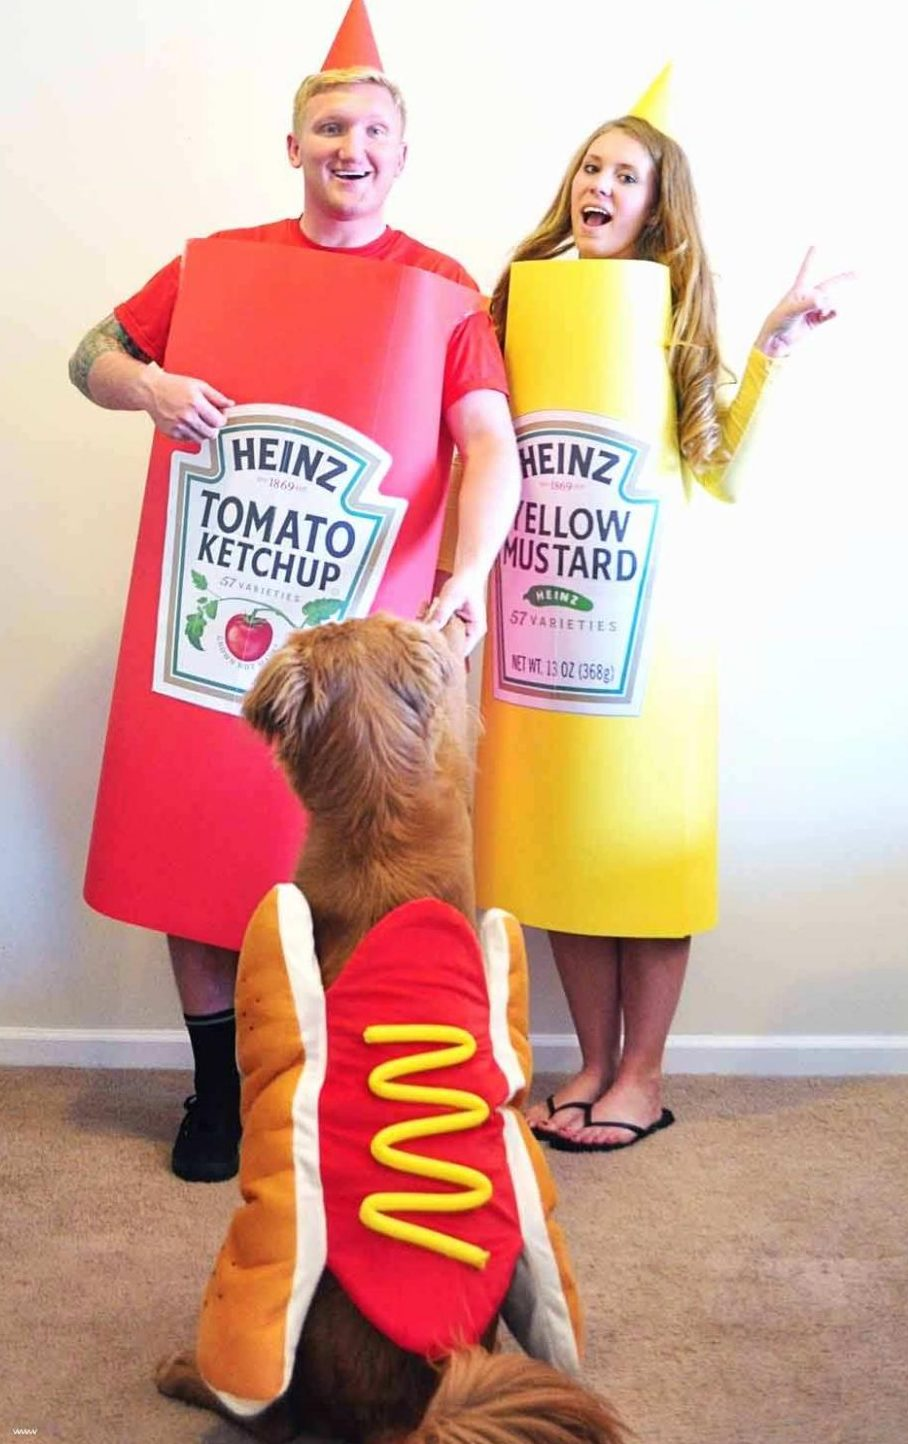 Ketchup, Mustard, and Hot Dog